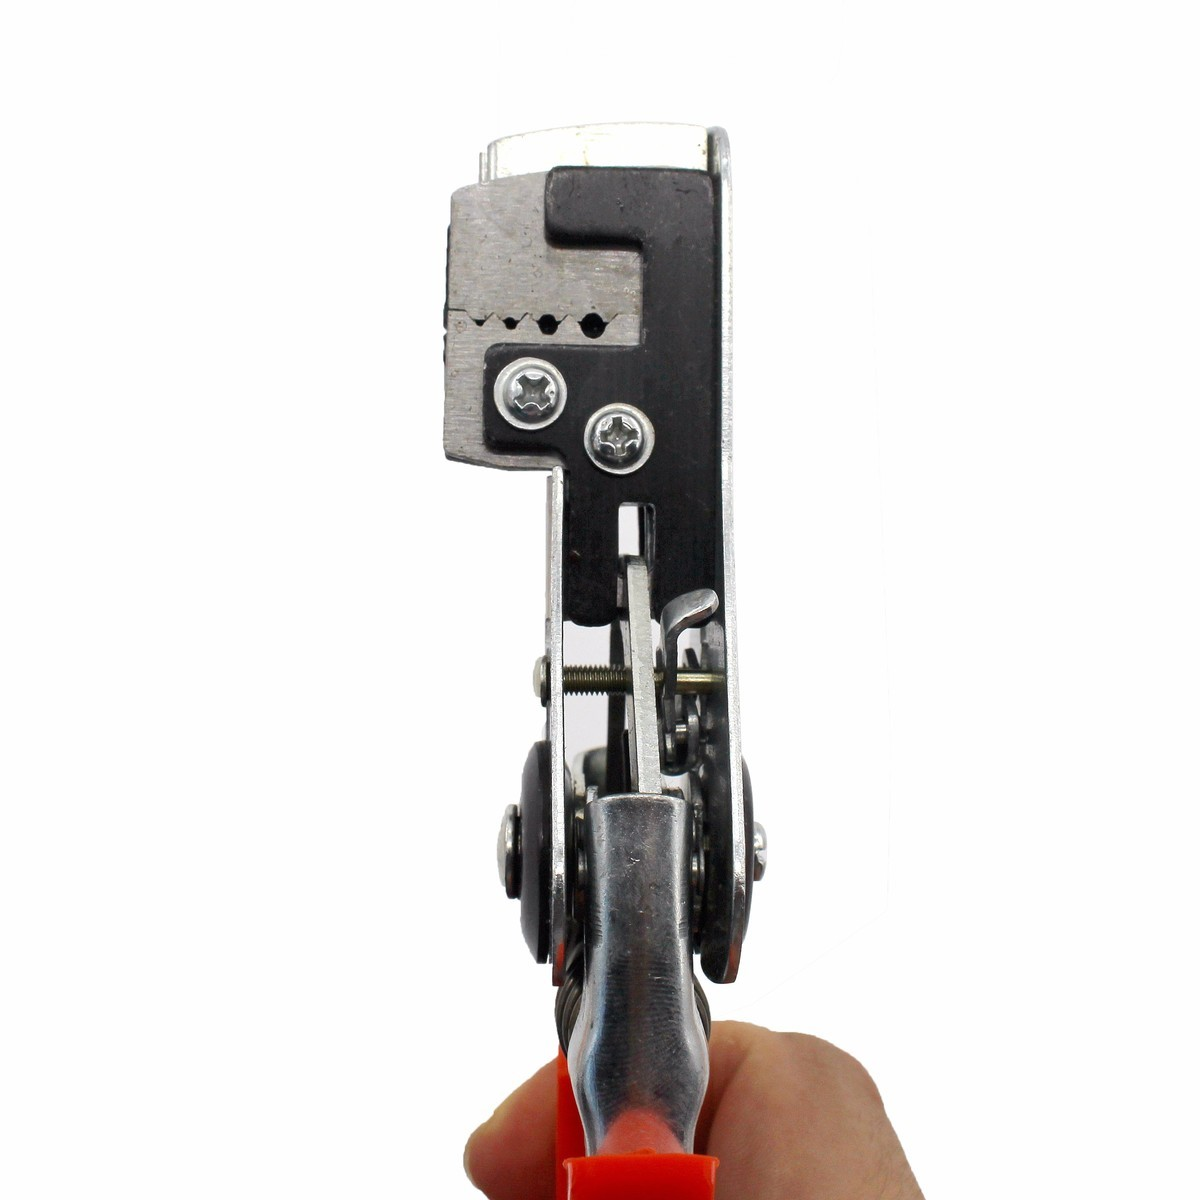 Купить с кэшбэком Automatic Stripping Pliers Wire Stripper Cutter Crimping Peeler Forceps Cable Tools Terminal Multifunctional Hand Tool